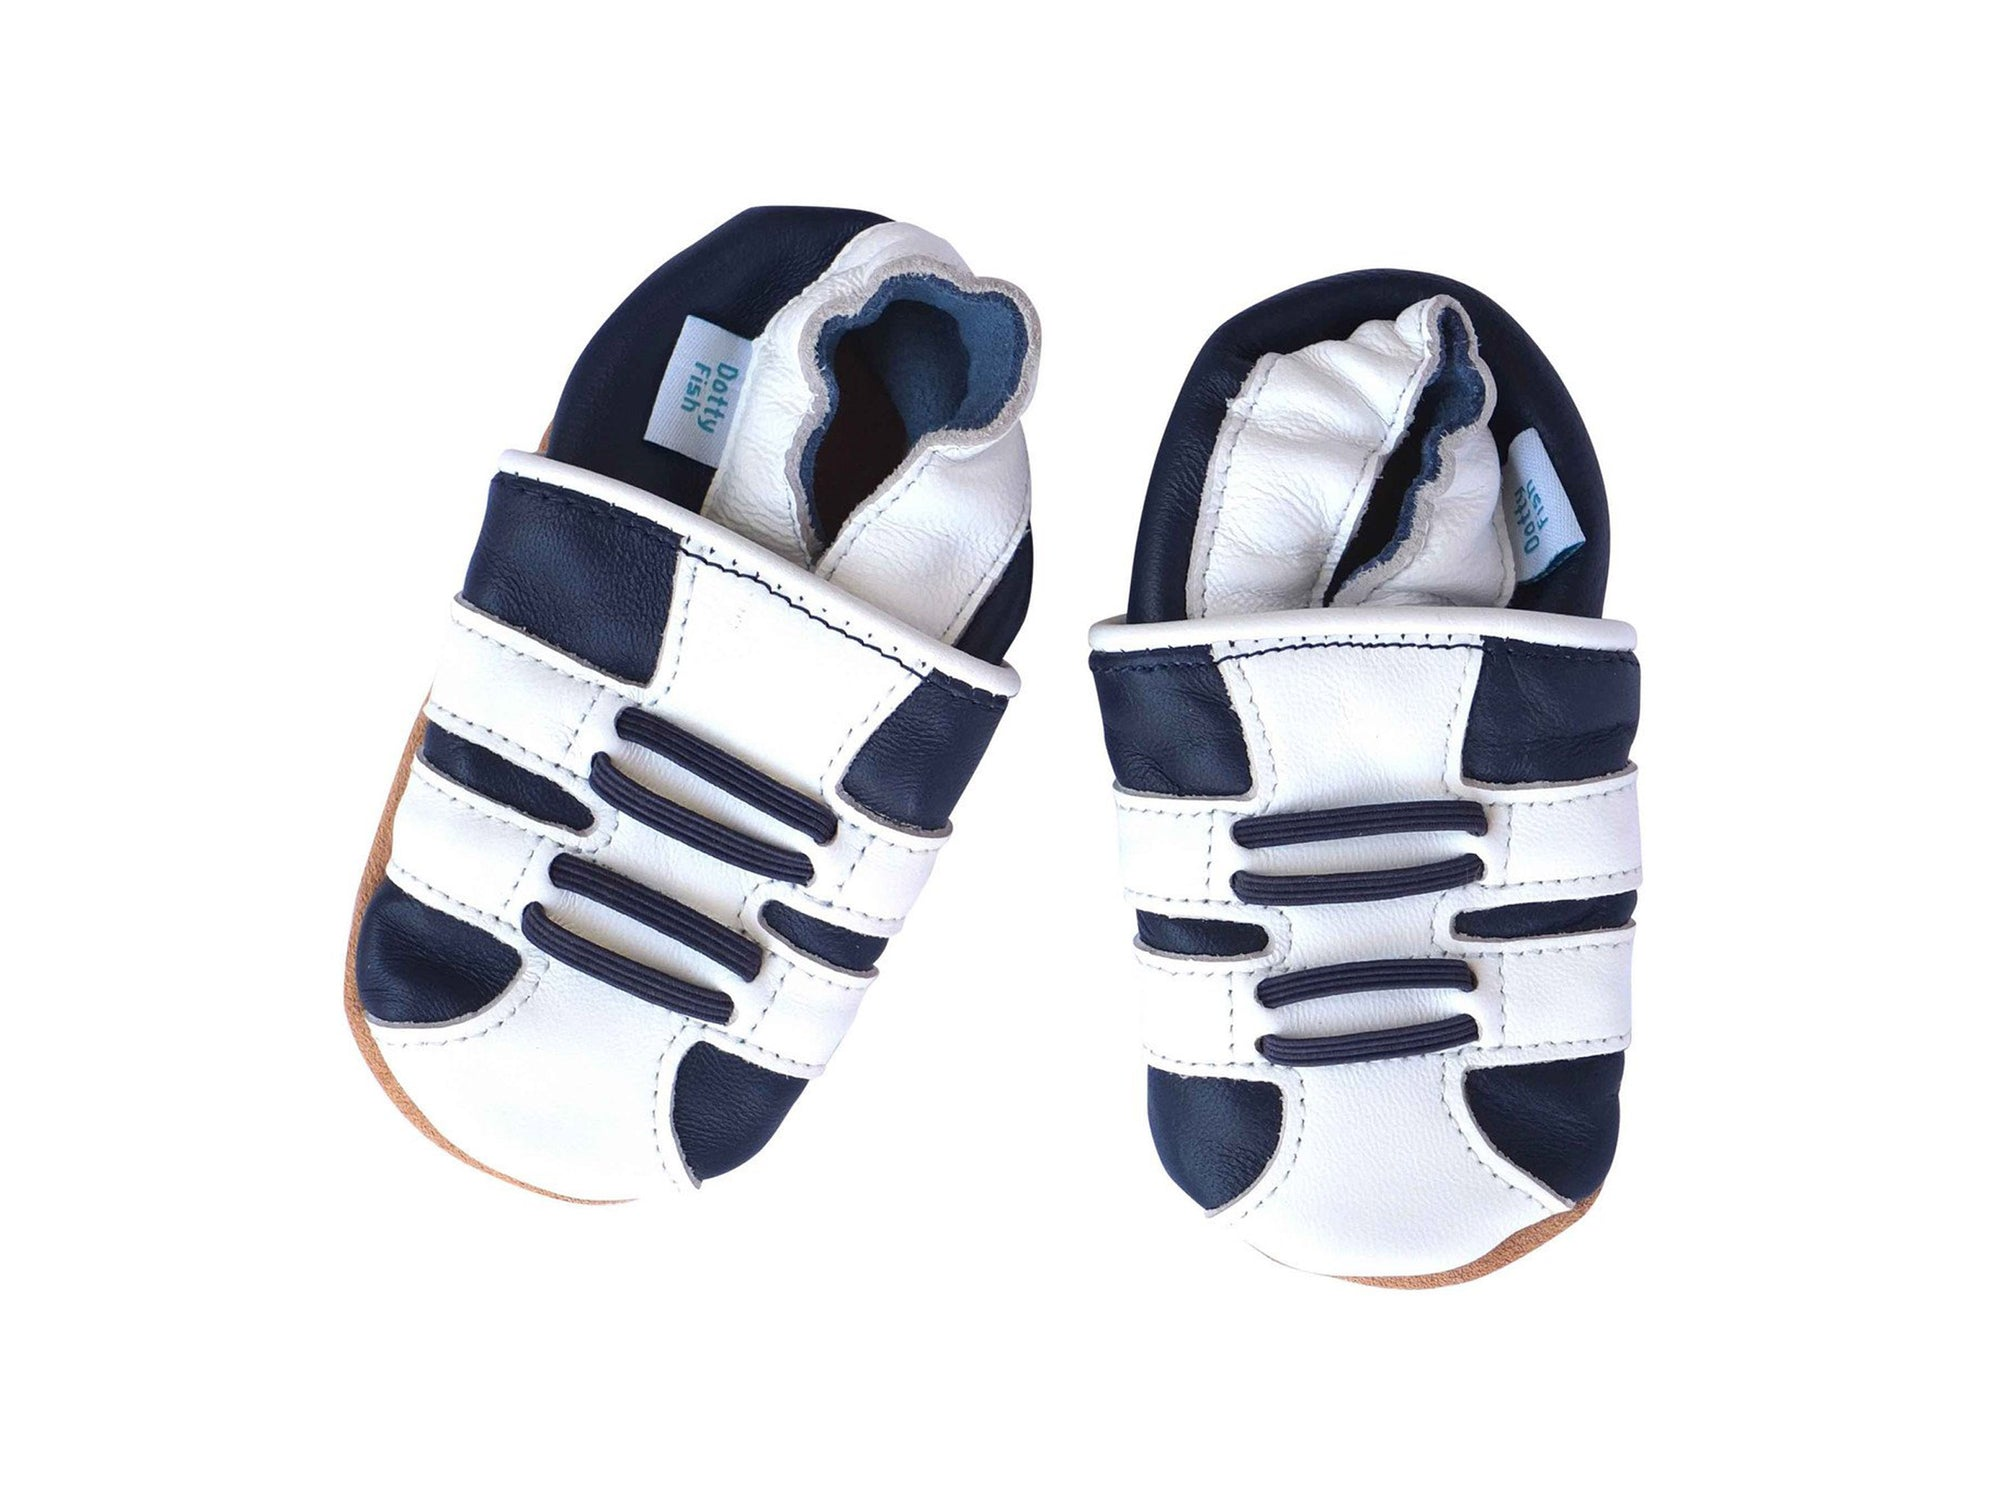 Boys Soft Leather Elasticised Pram Shoes - Blue Sports